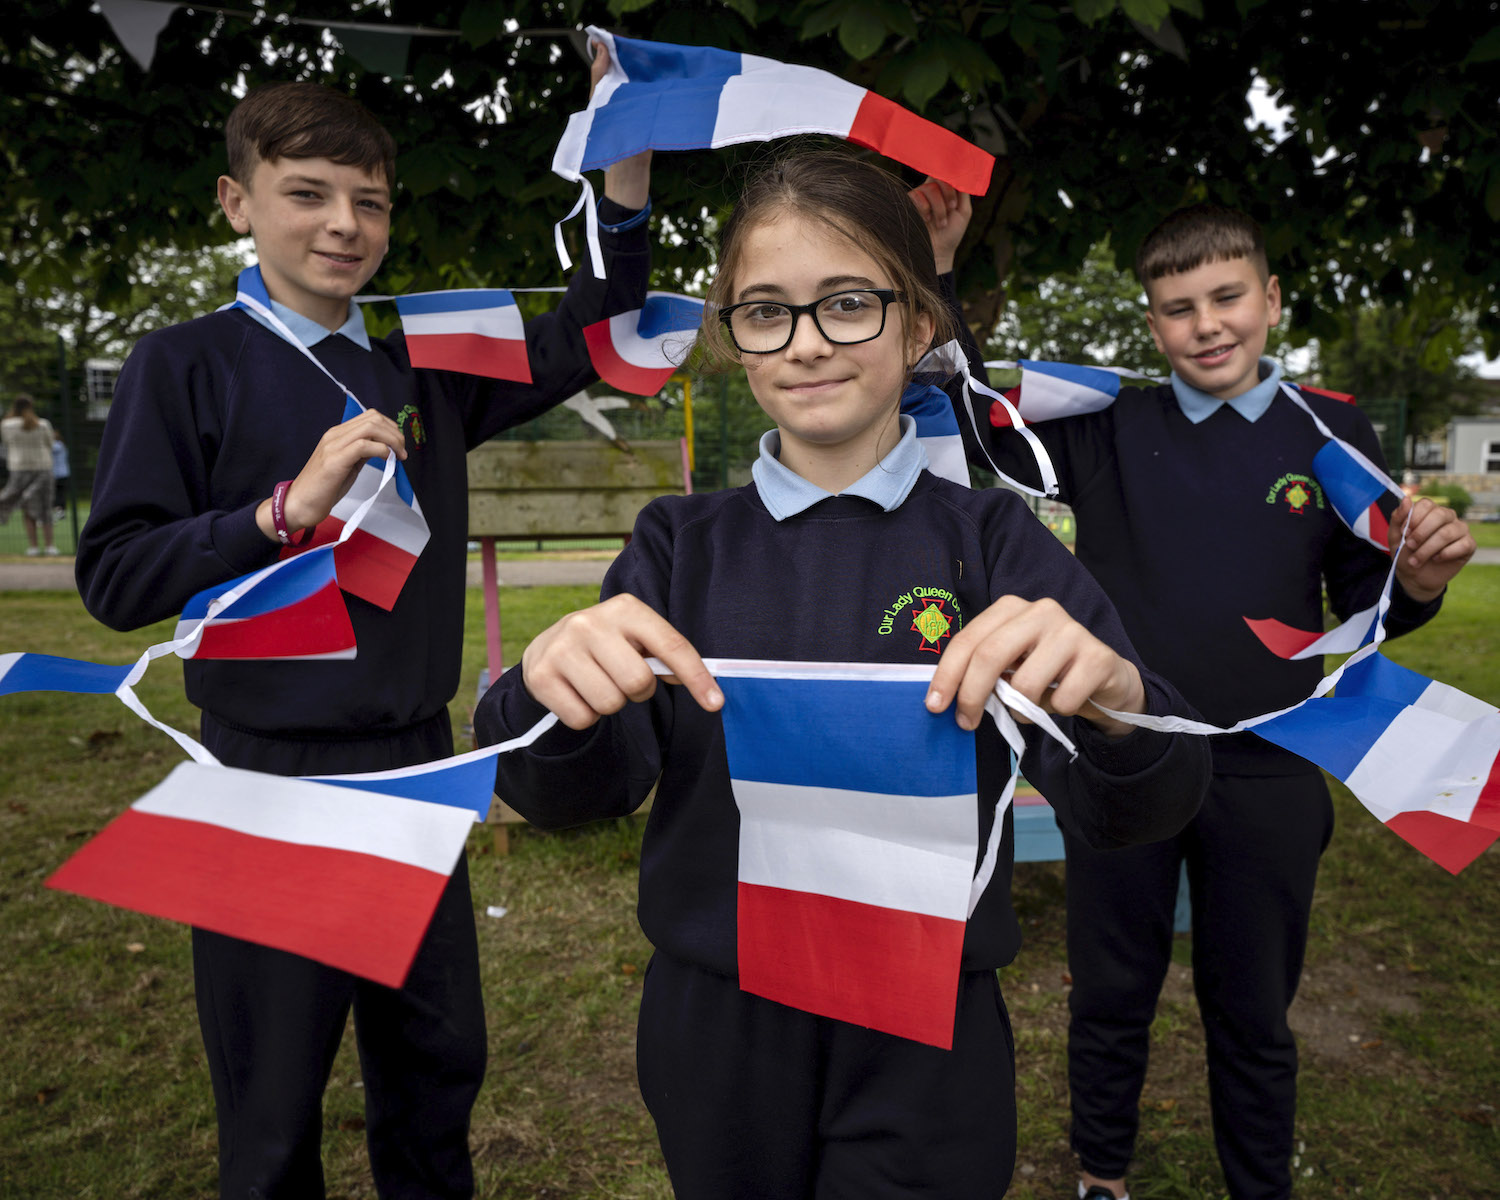 Chad Molloy, Aaliyah Pickford and Alex Heffernan from Our Lady Queen of Peace Primary School, Janesboro, Limerick. Picture: Don Moloney